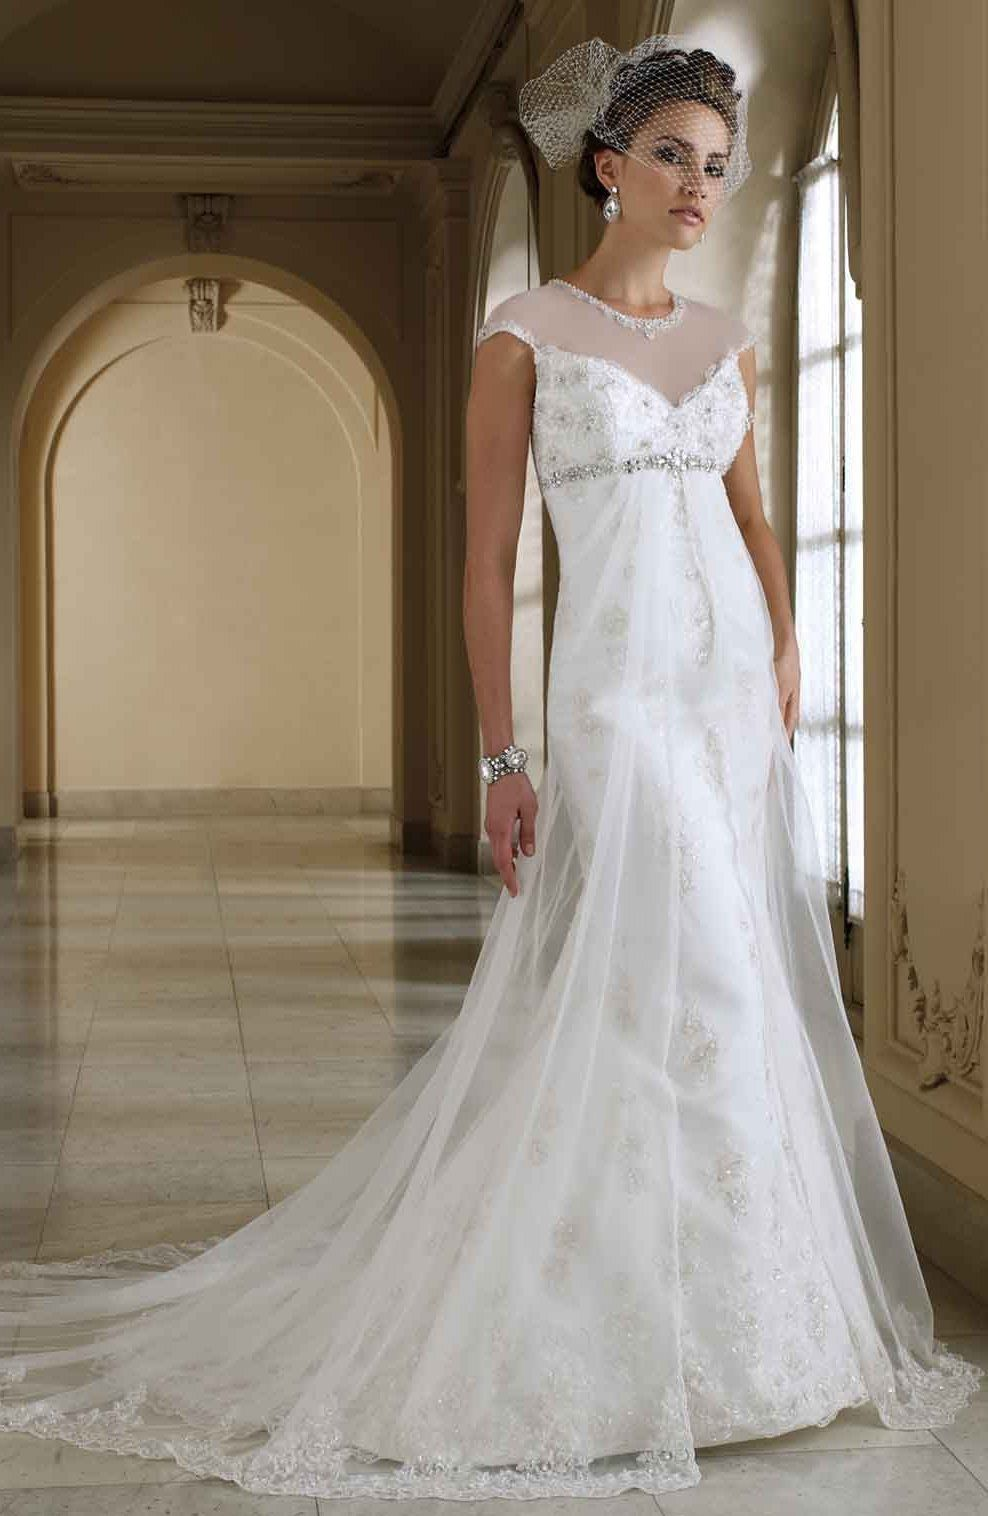 77+ Used Wedding Dresses Houston - Dresses for Wedding Party Check ...